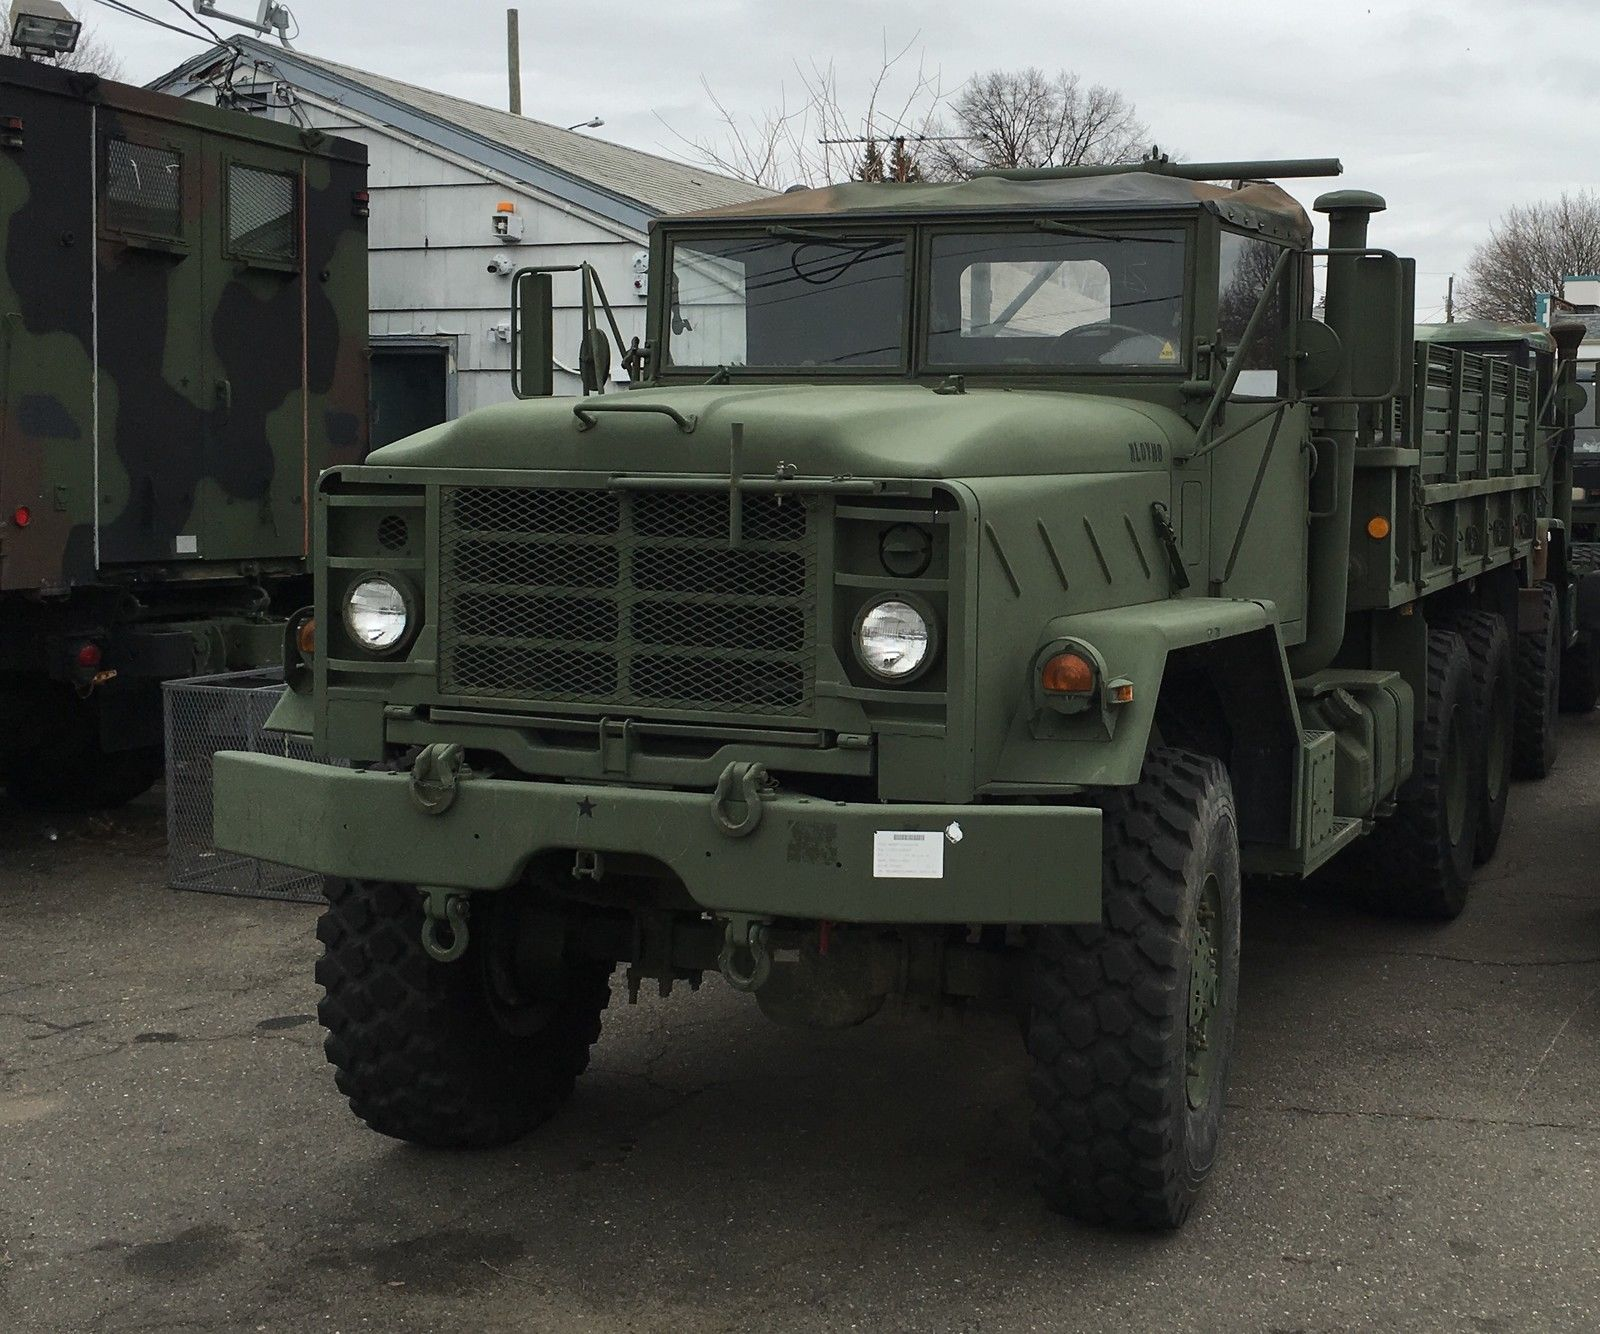 Vehicles For Sale: 2012 RRAD Rebuild Military M923a2 6X6 Turbo Cargo Truck